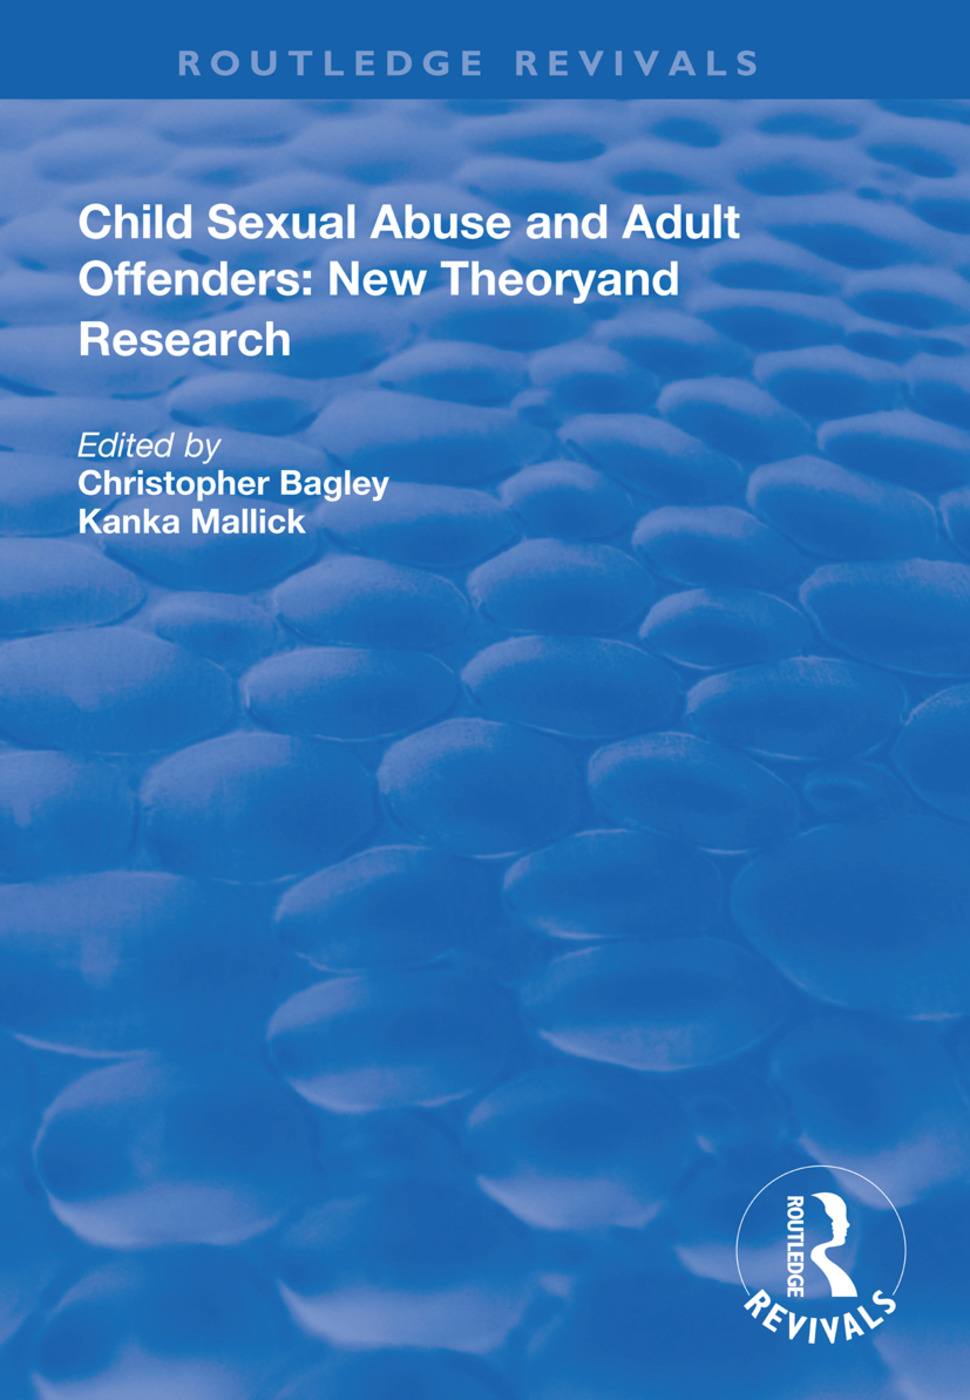 Child Sexual Abuse and Adult Offenders: New Theory and Research book cover